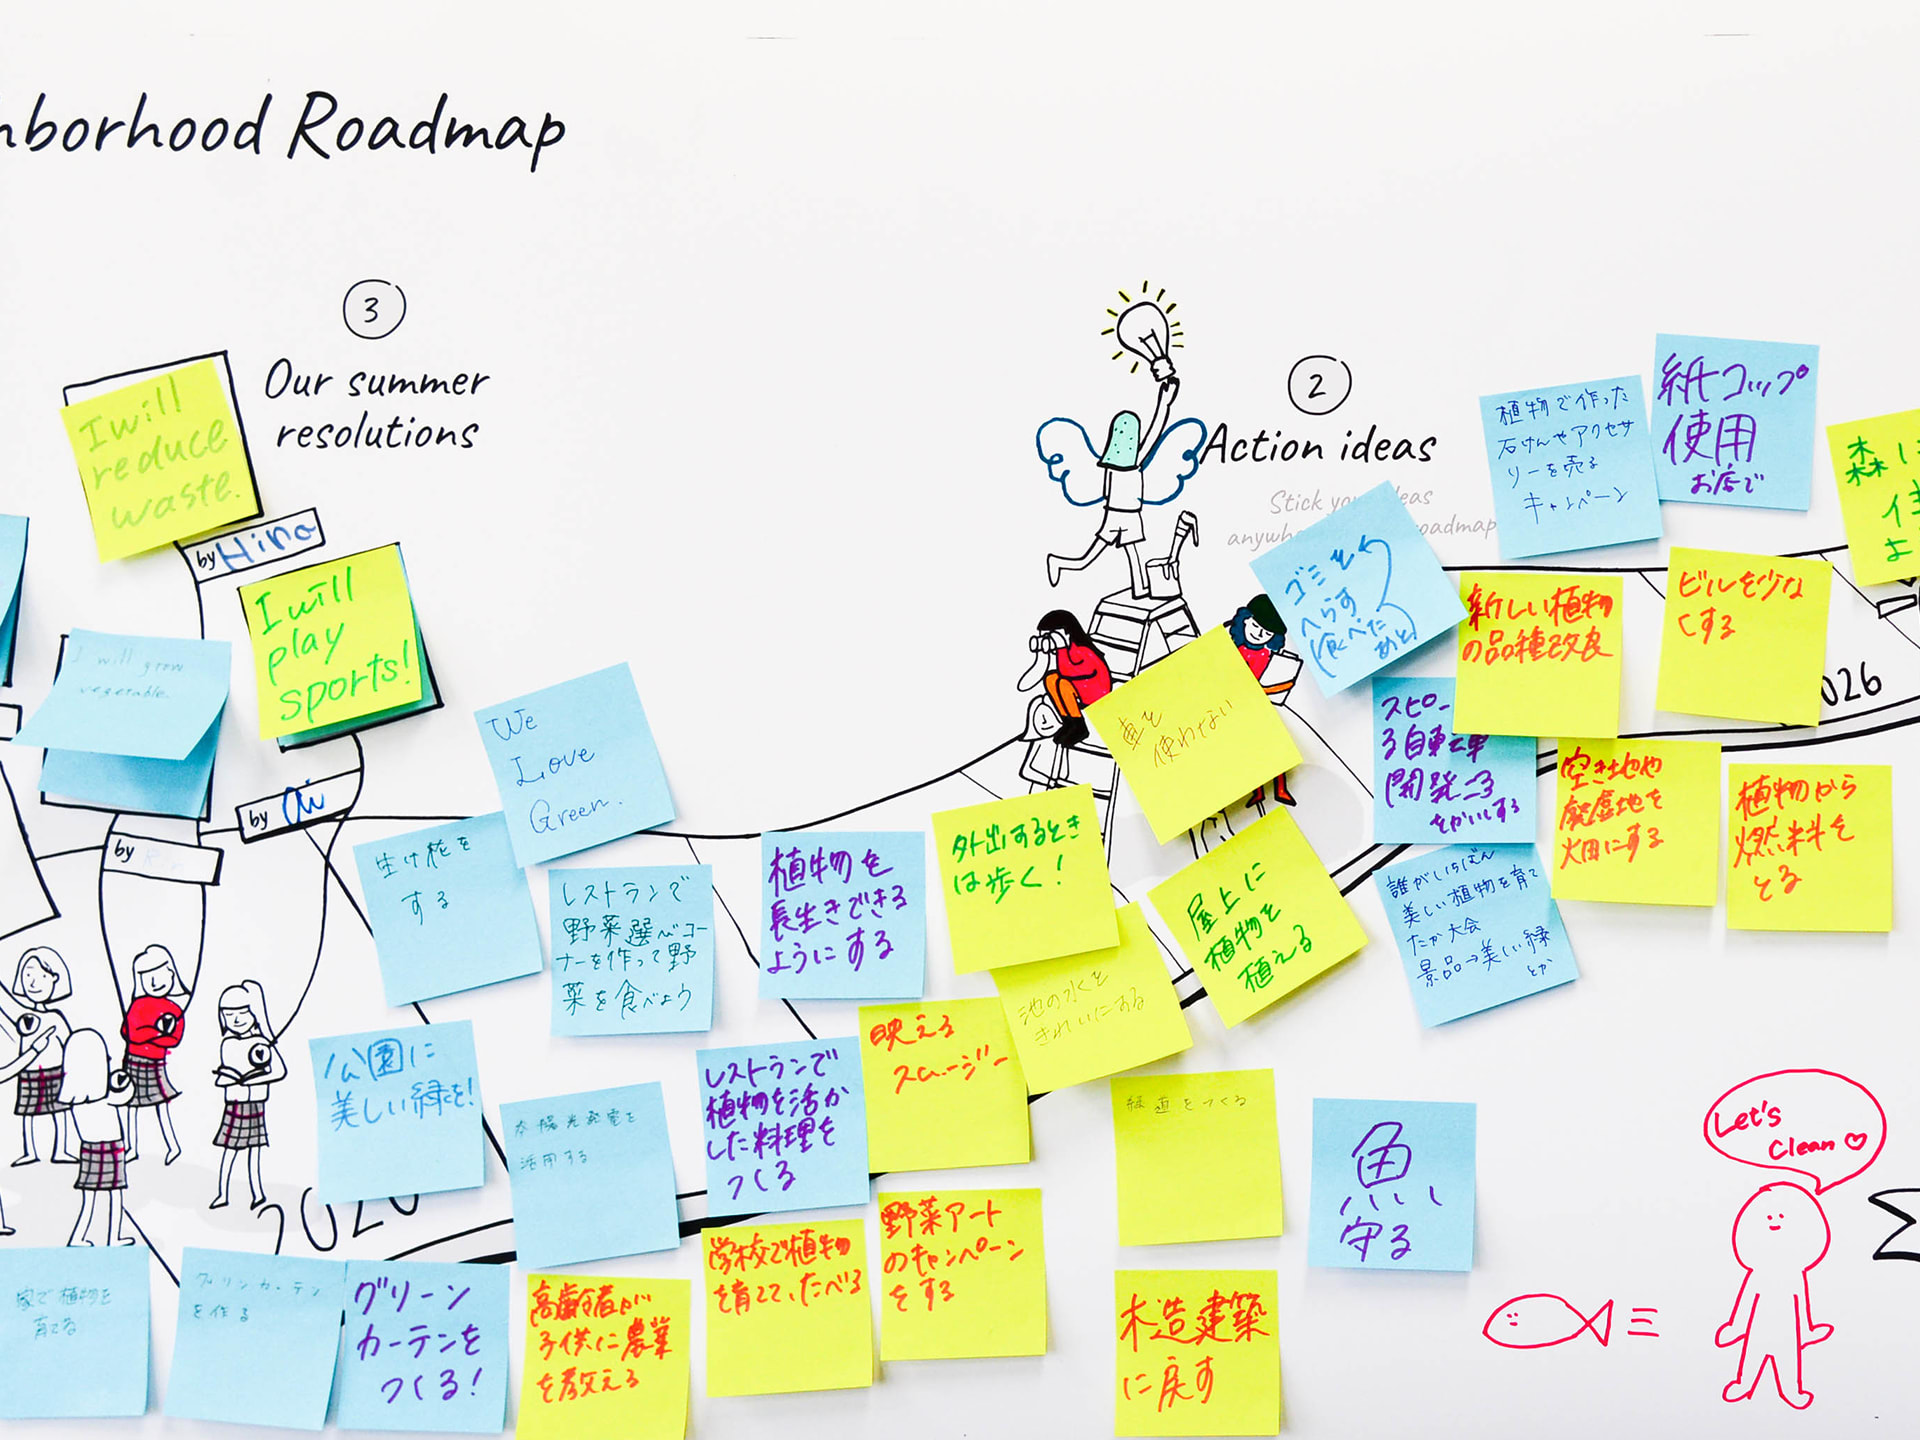 A close up of a finished roadmap, covered in ideas for building a desired future.